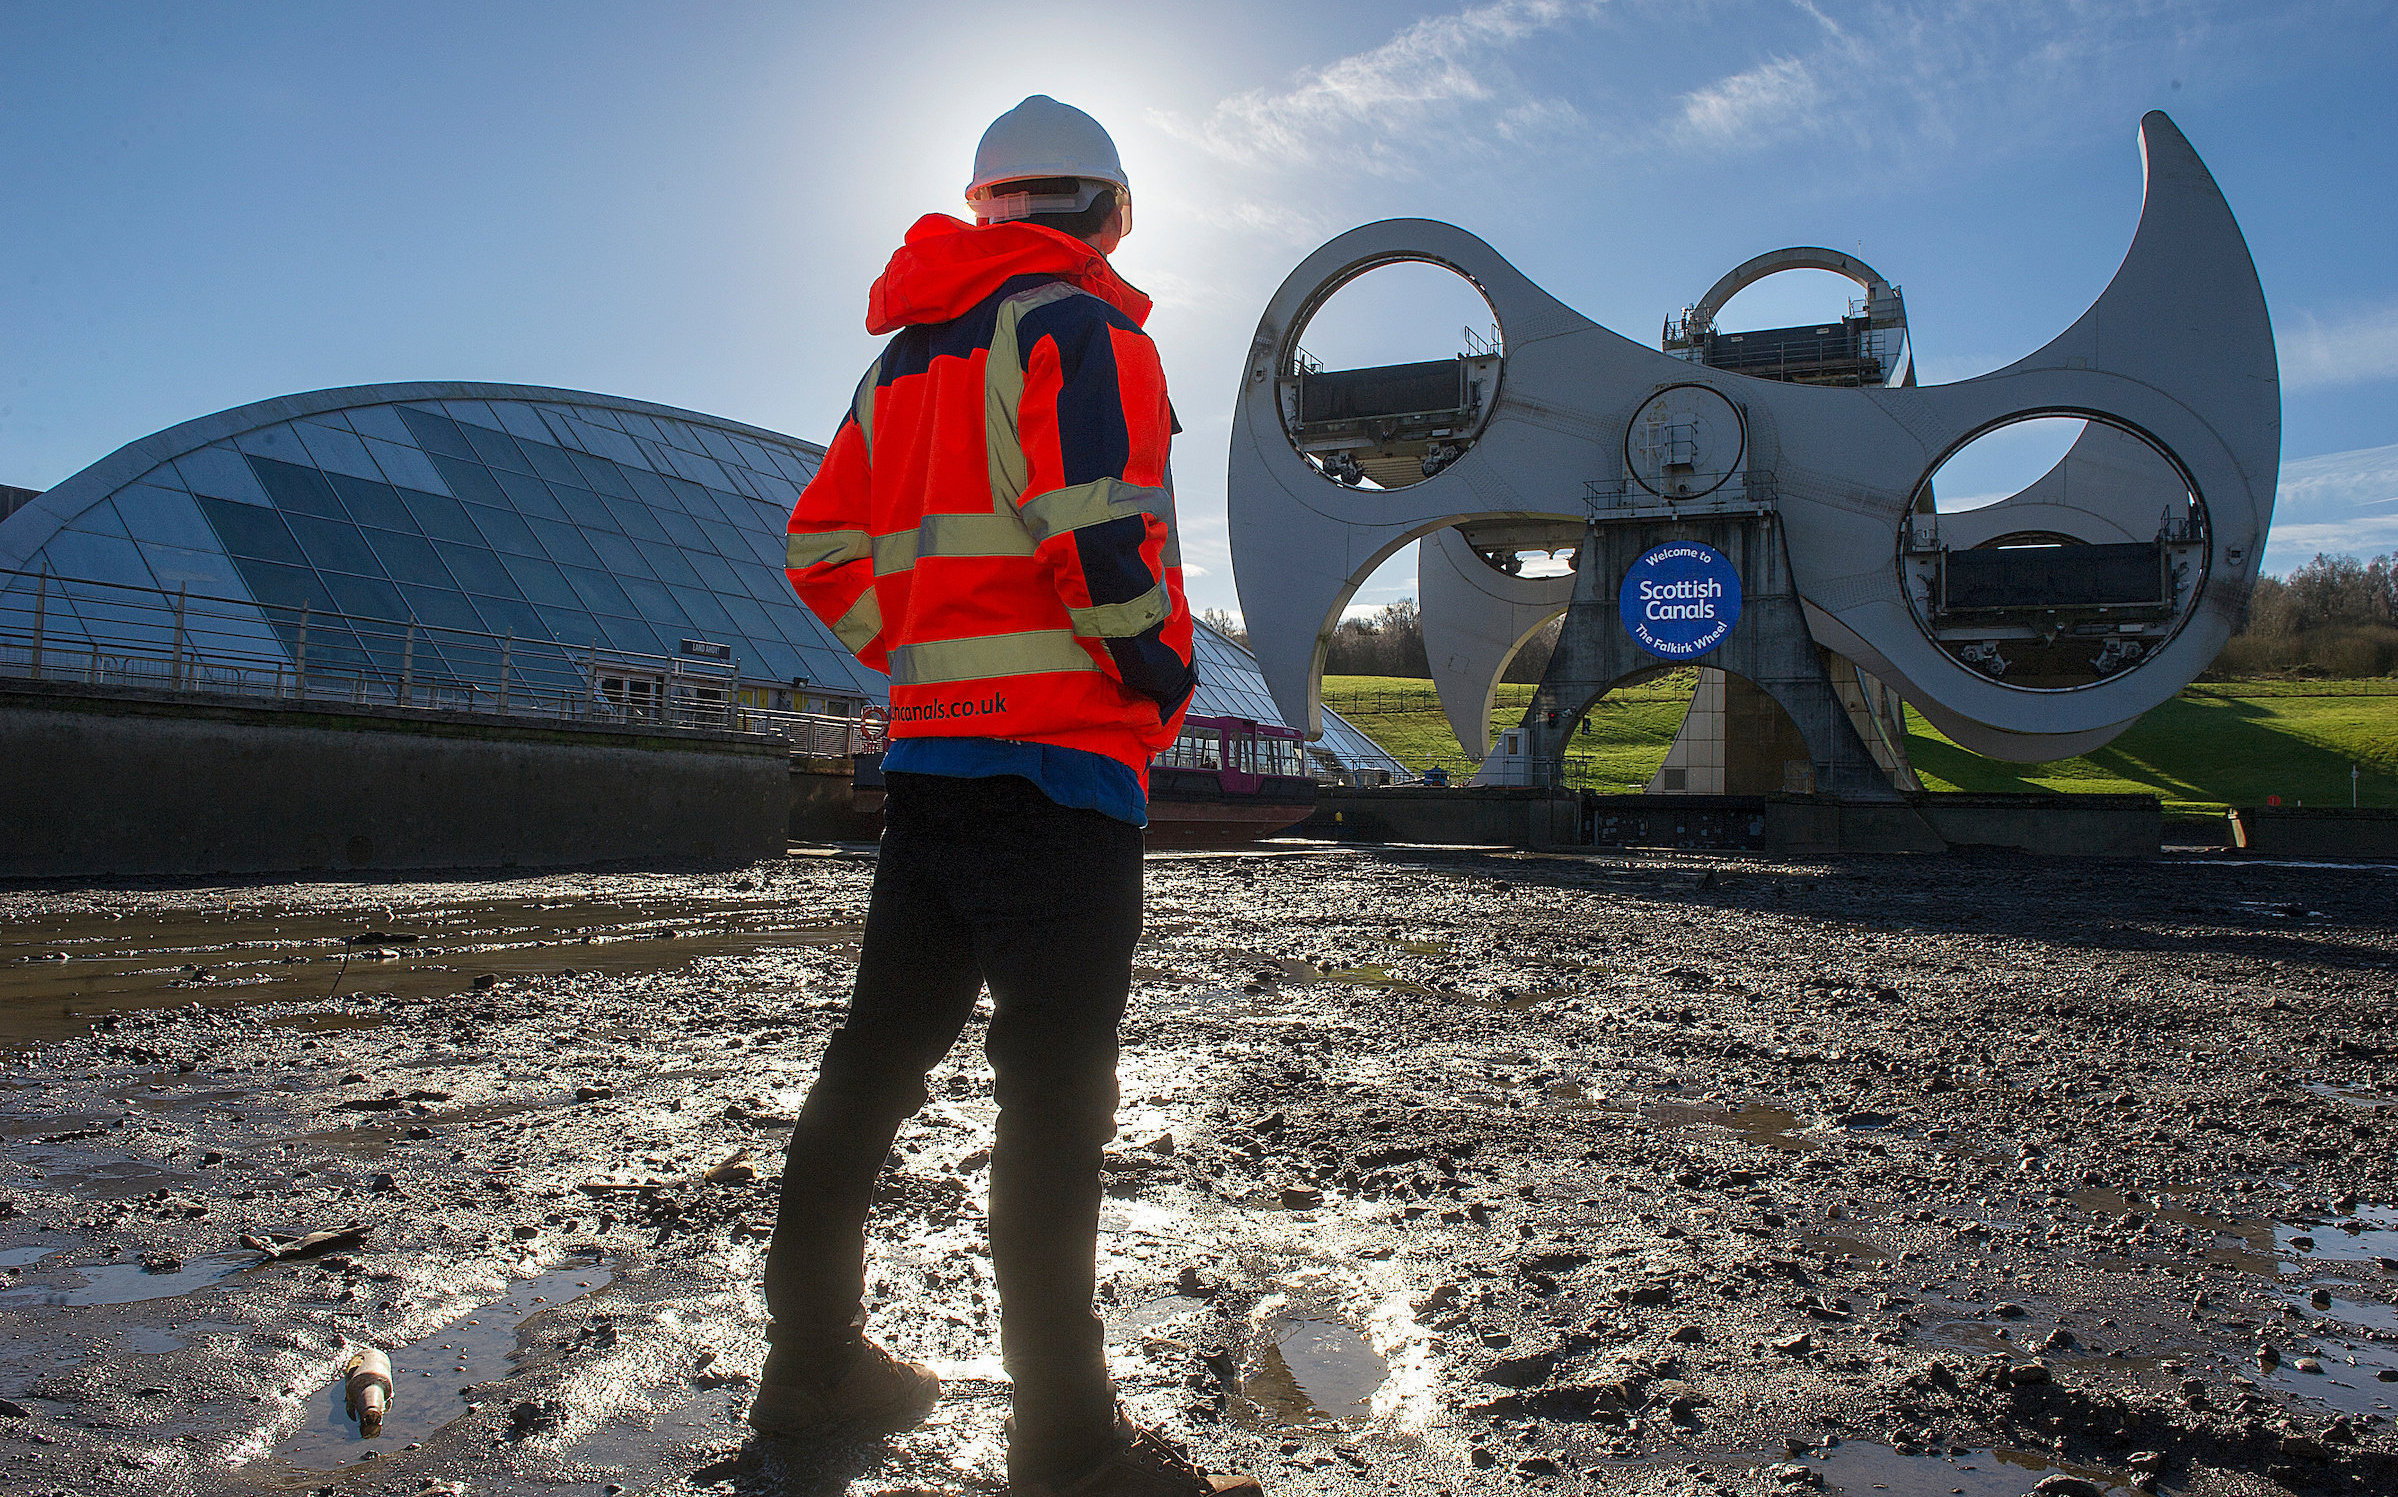 Scottish Canals' engineering team will be working throughout the month to inspect and maintain the Falkirk Wheel